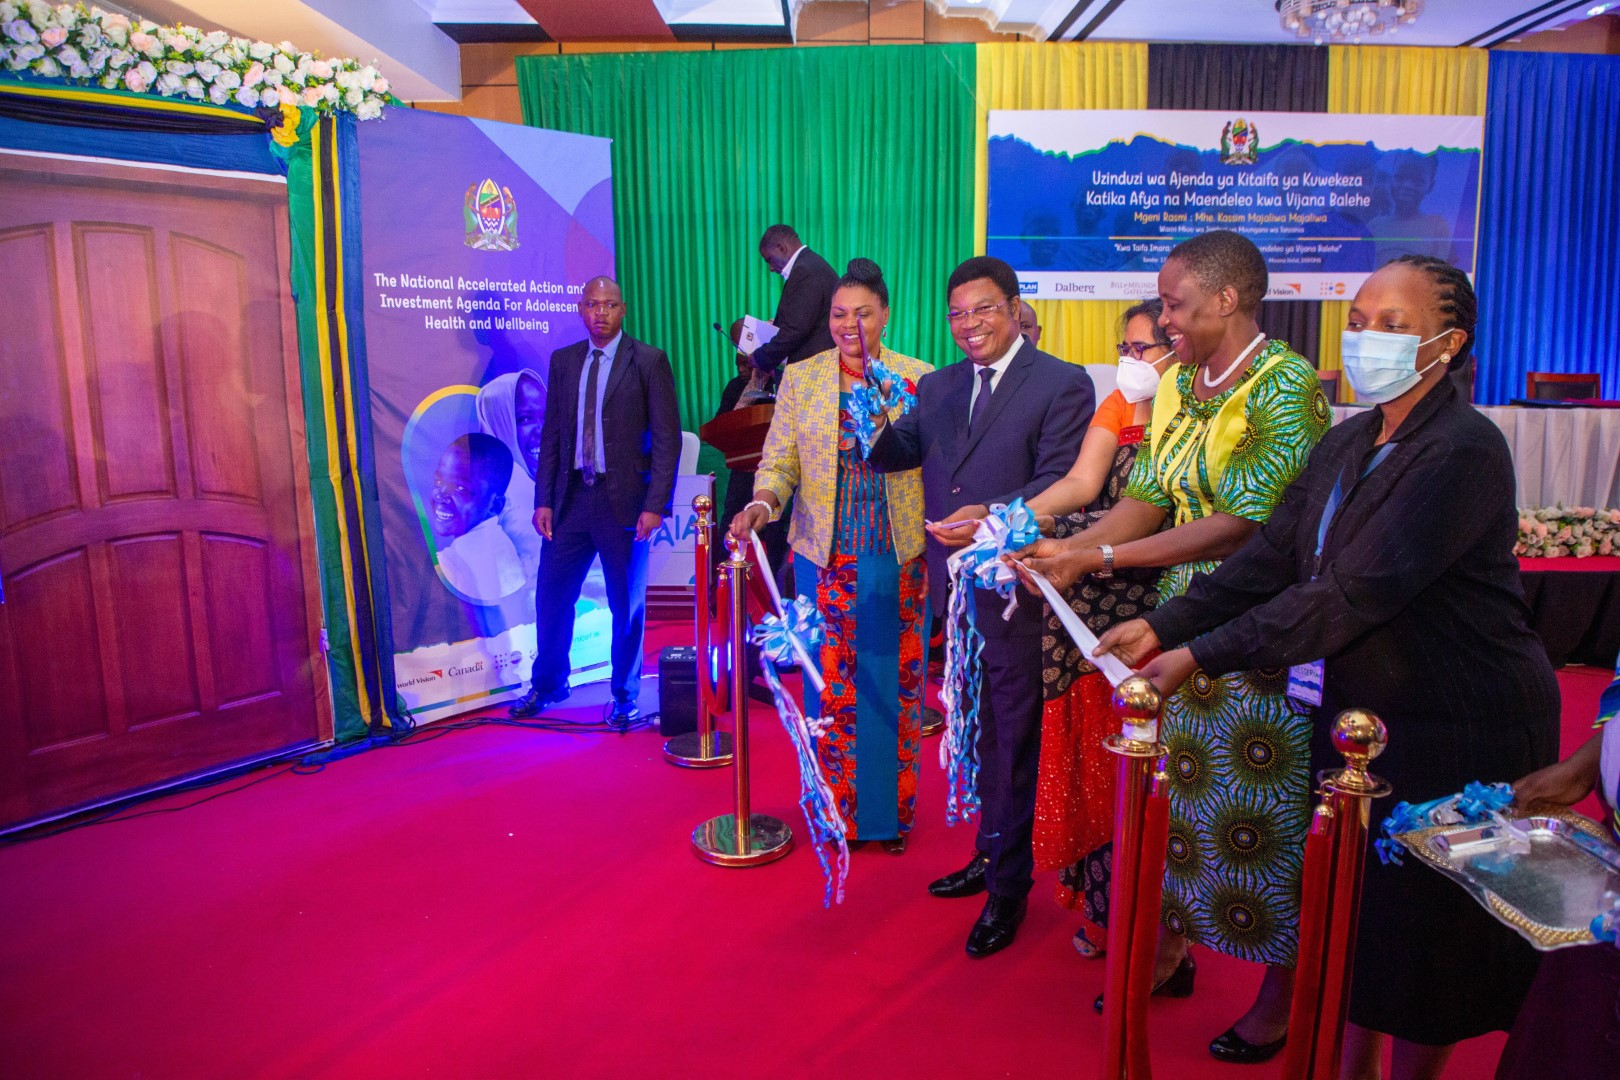 Agenda for investing for Adolescent Health and Well Being launched